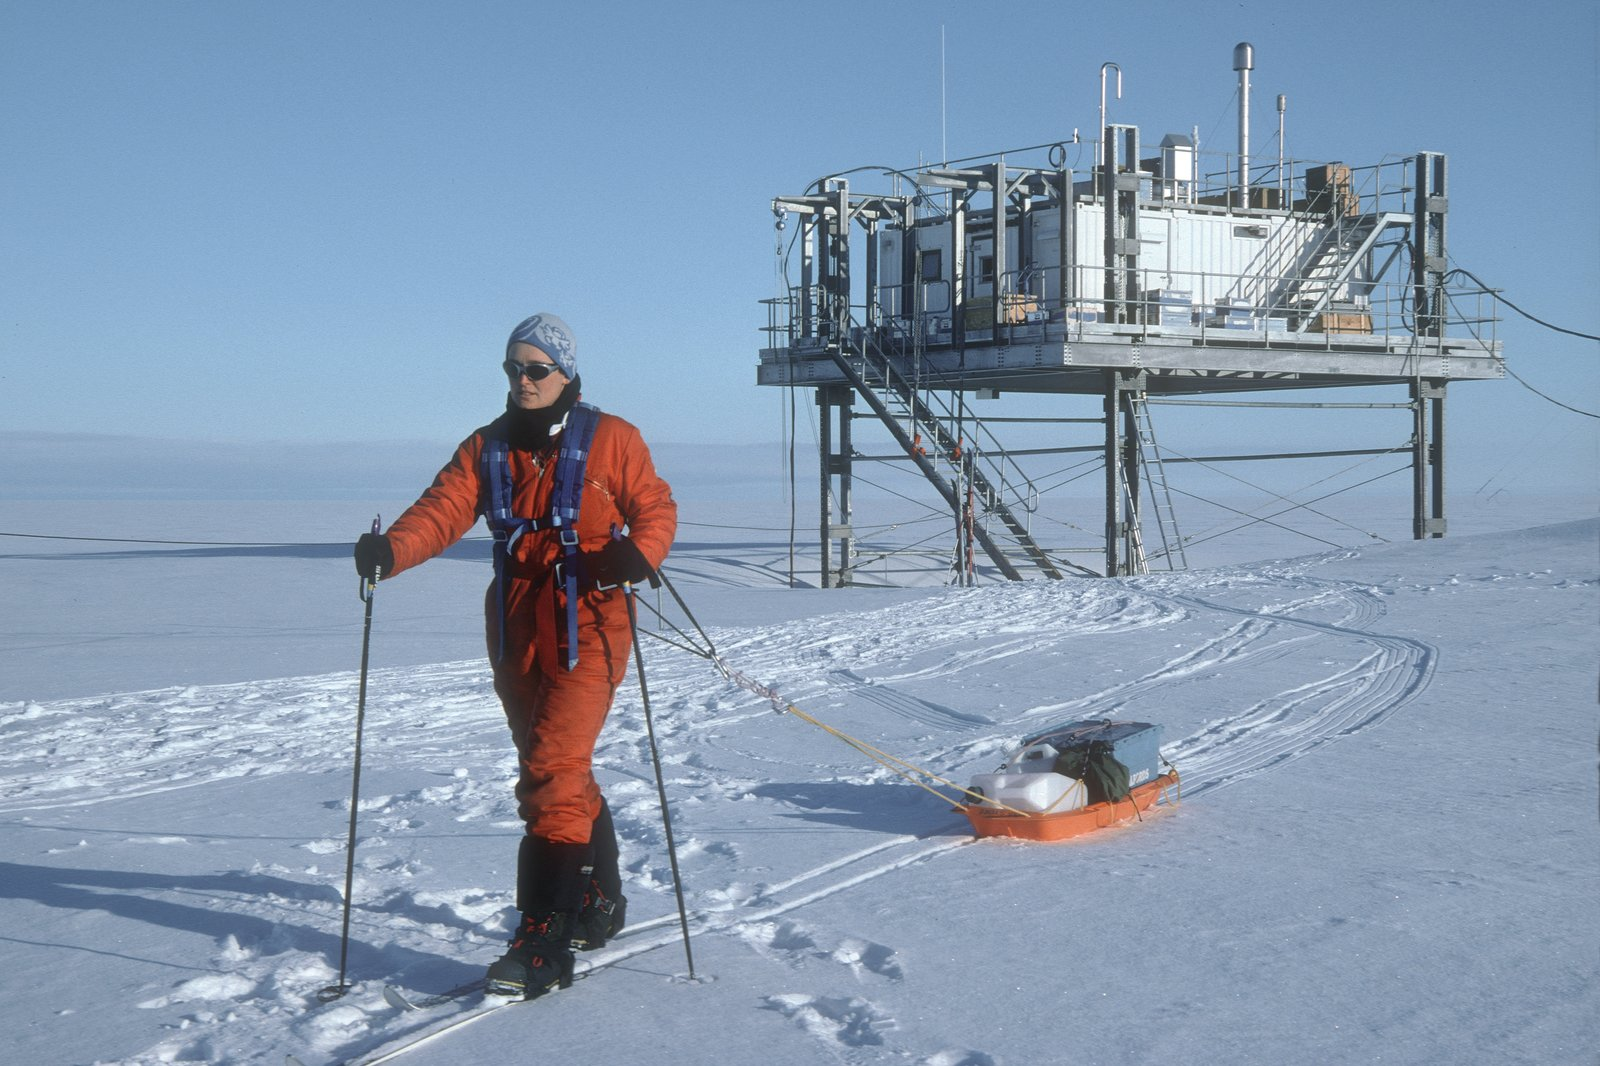 CO2 levels monitored at the Halley Research Station in Antarctica